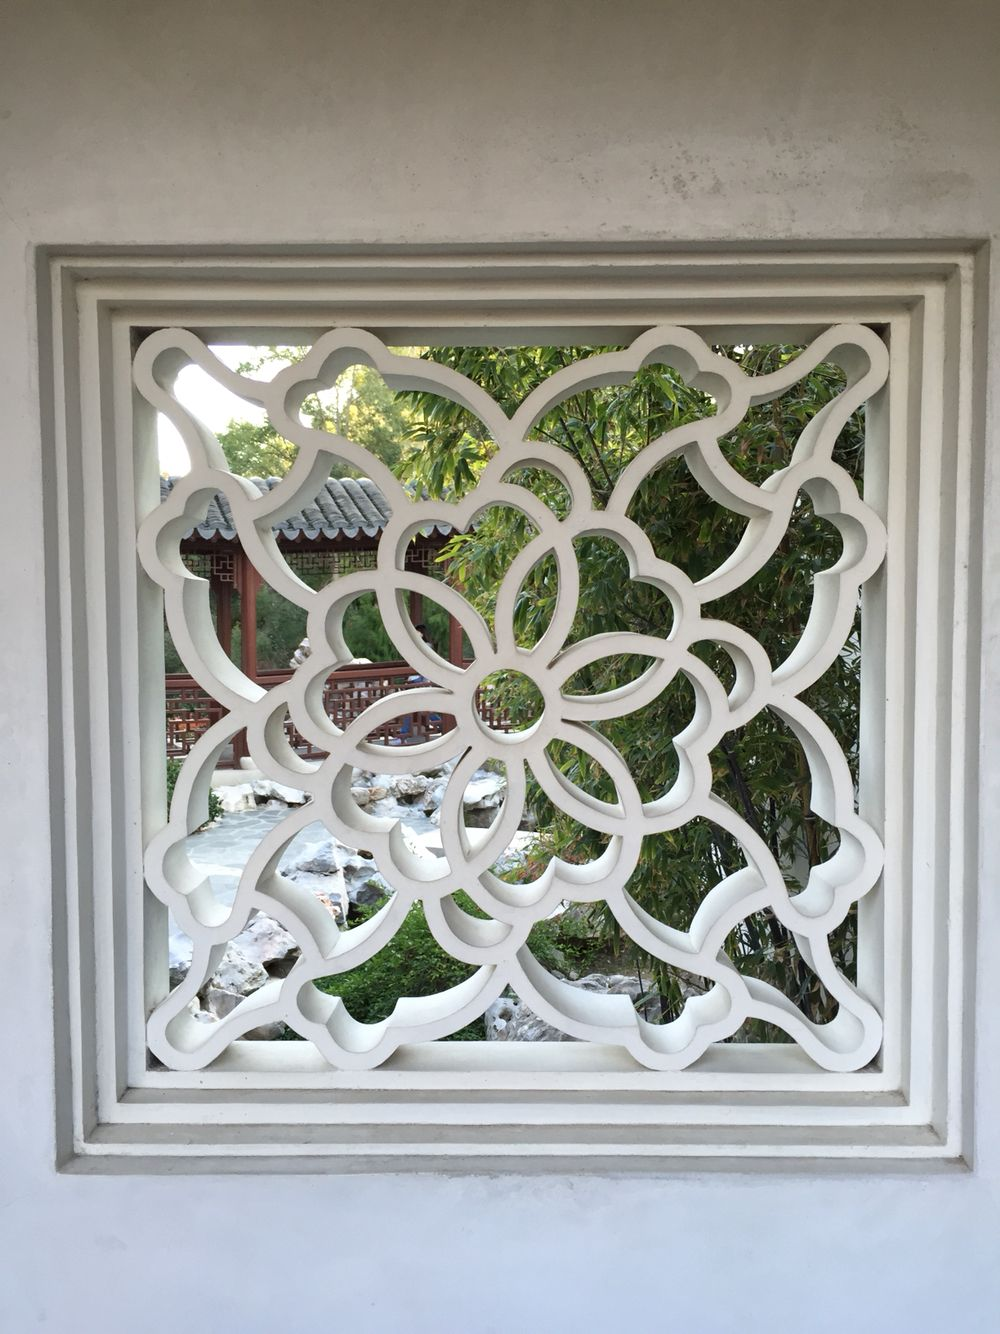 Geometric window Chinese garden